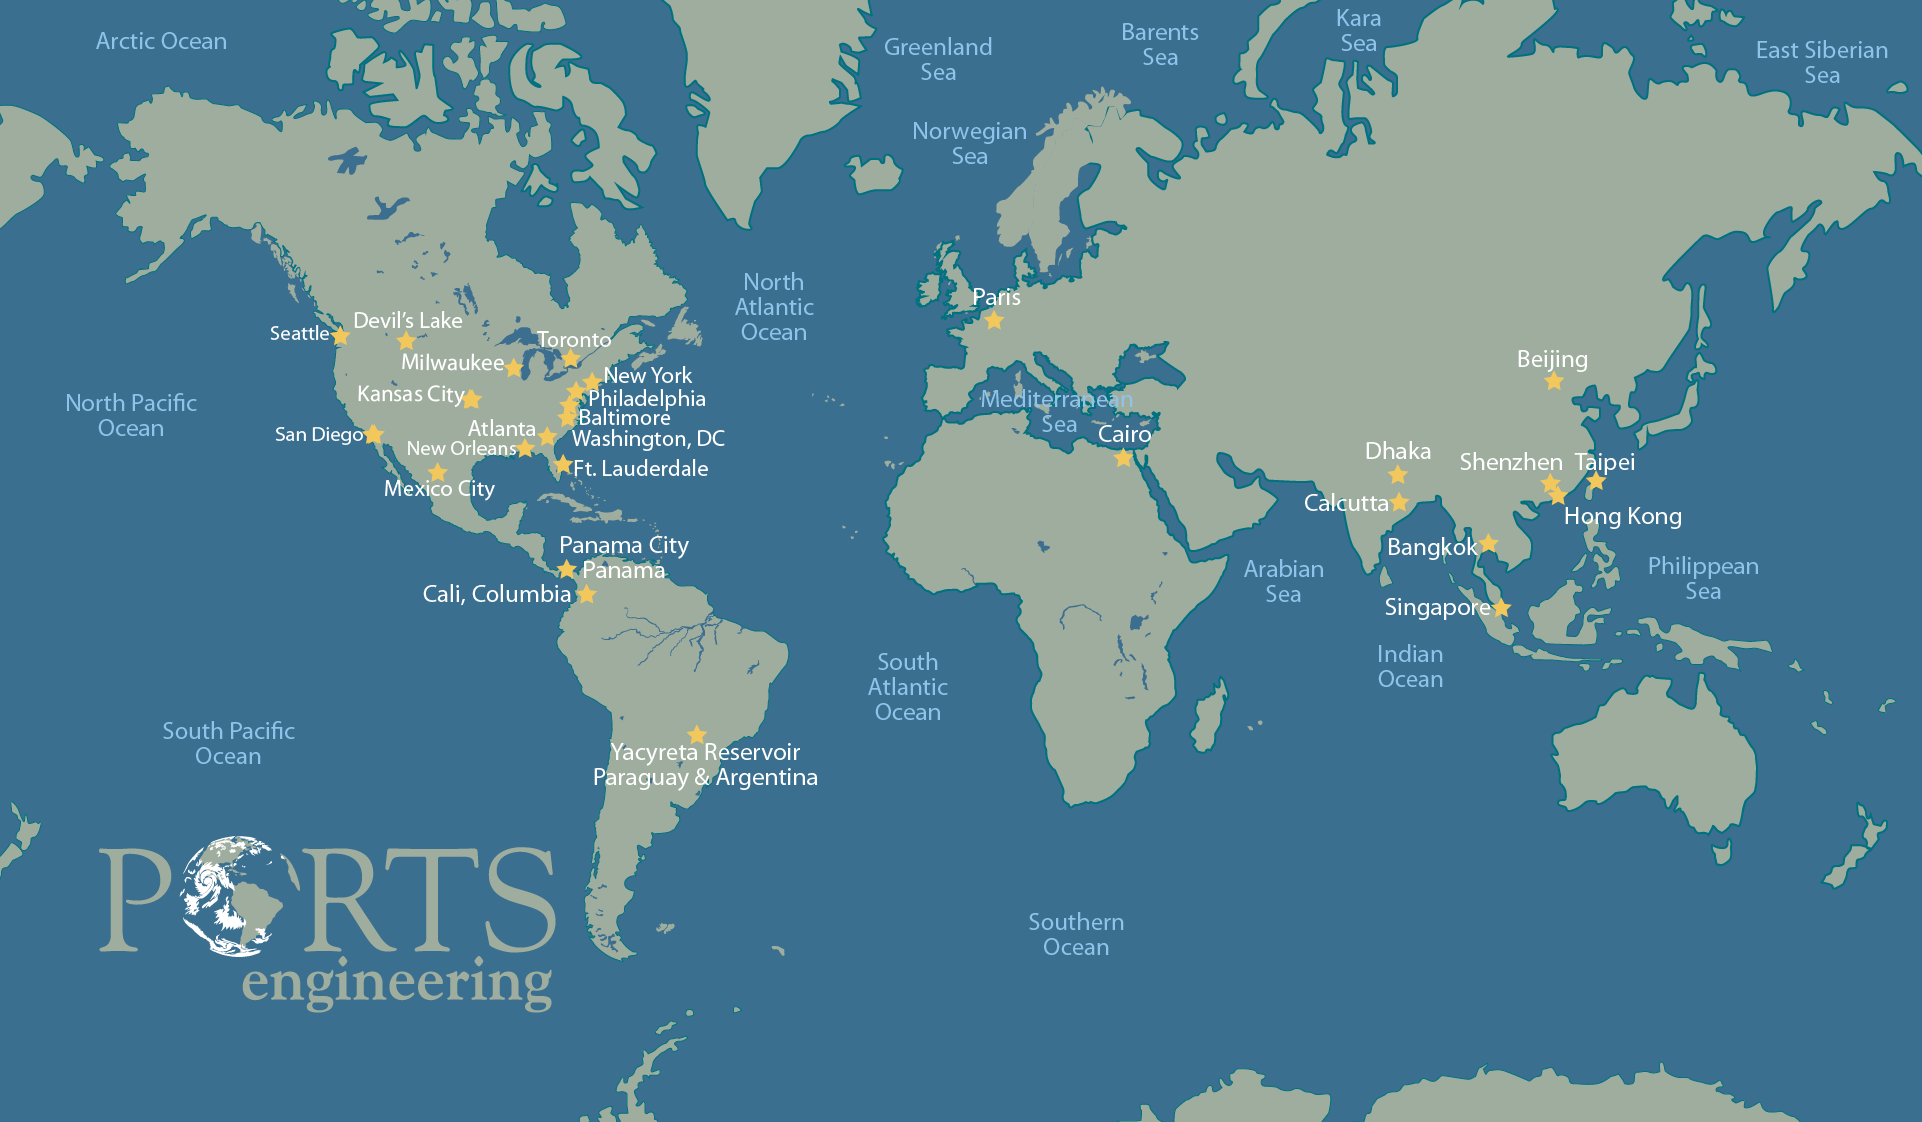 Picture of: Map Of Projects Portsengineering Com